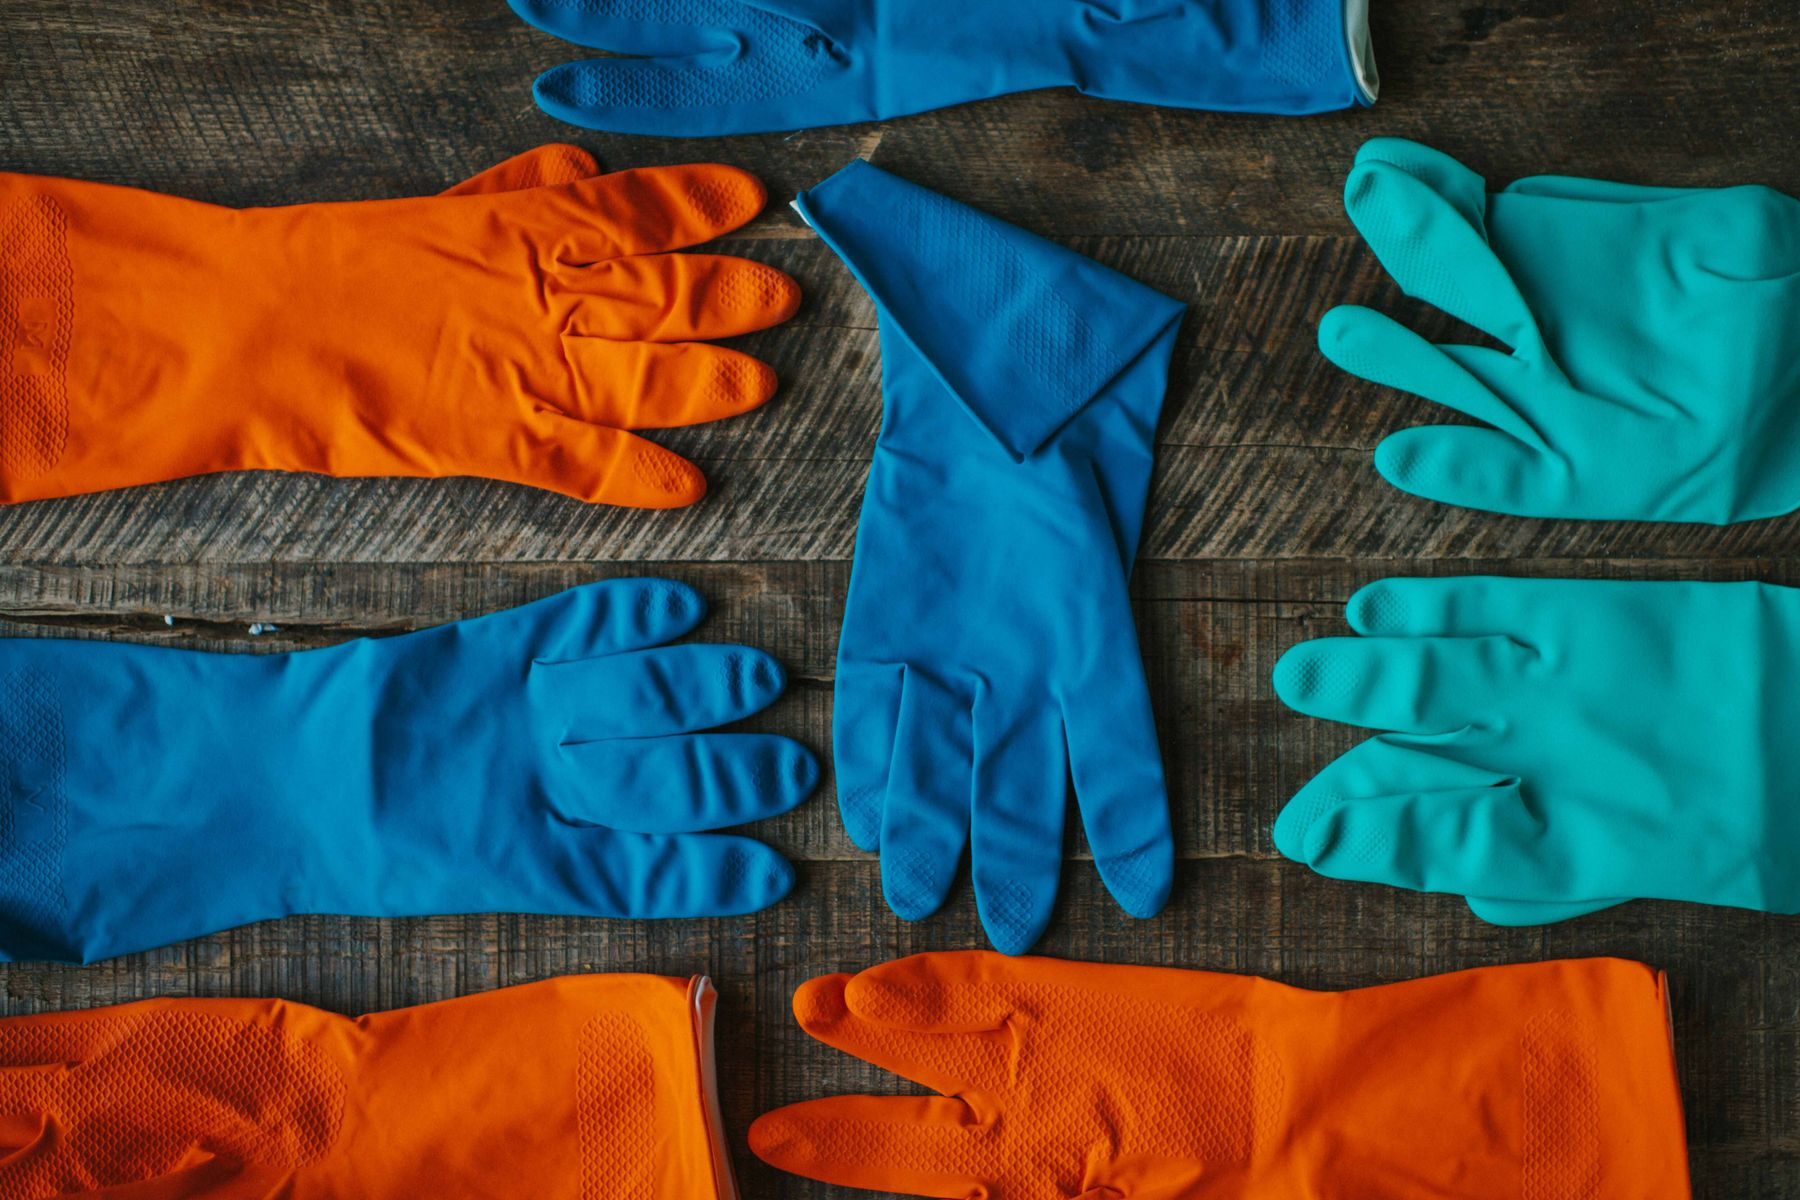 Rubber gloves in shades of blue and orange